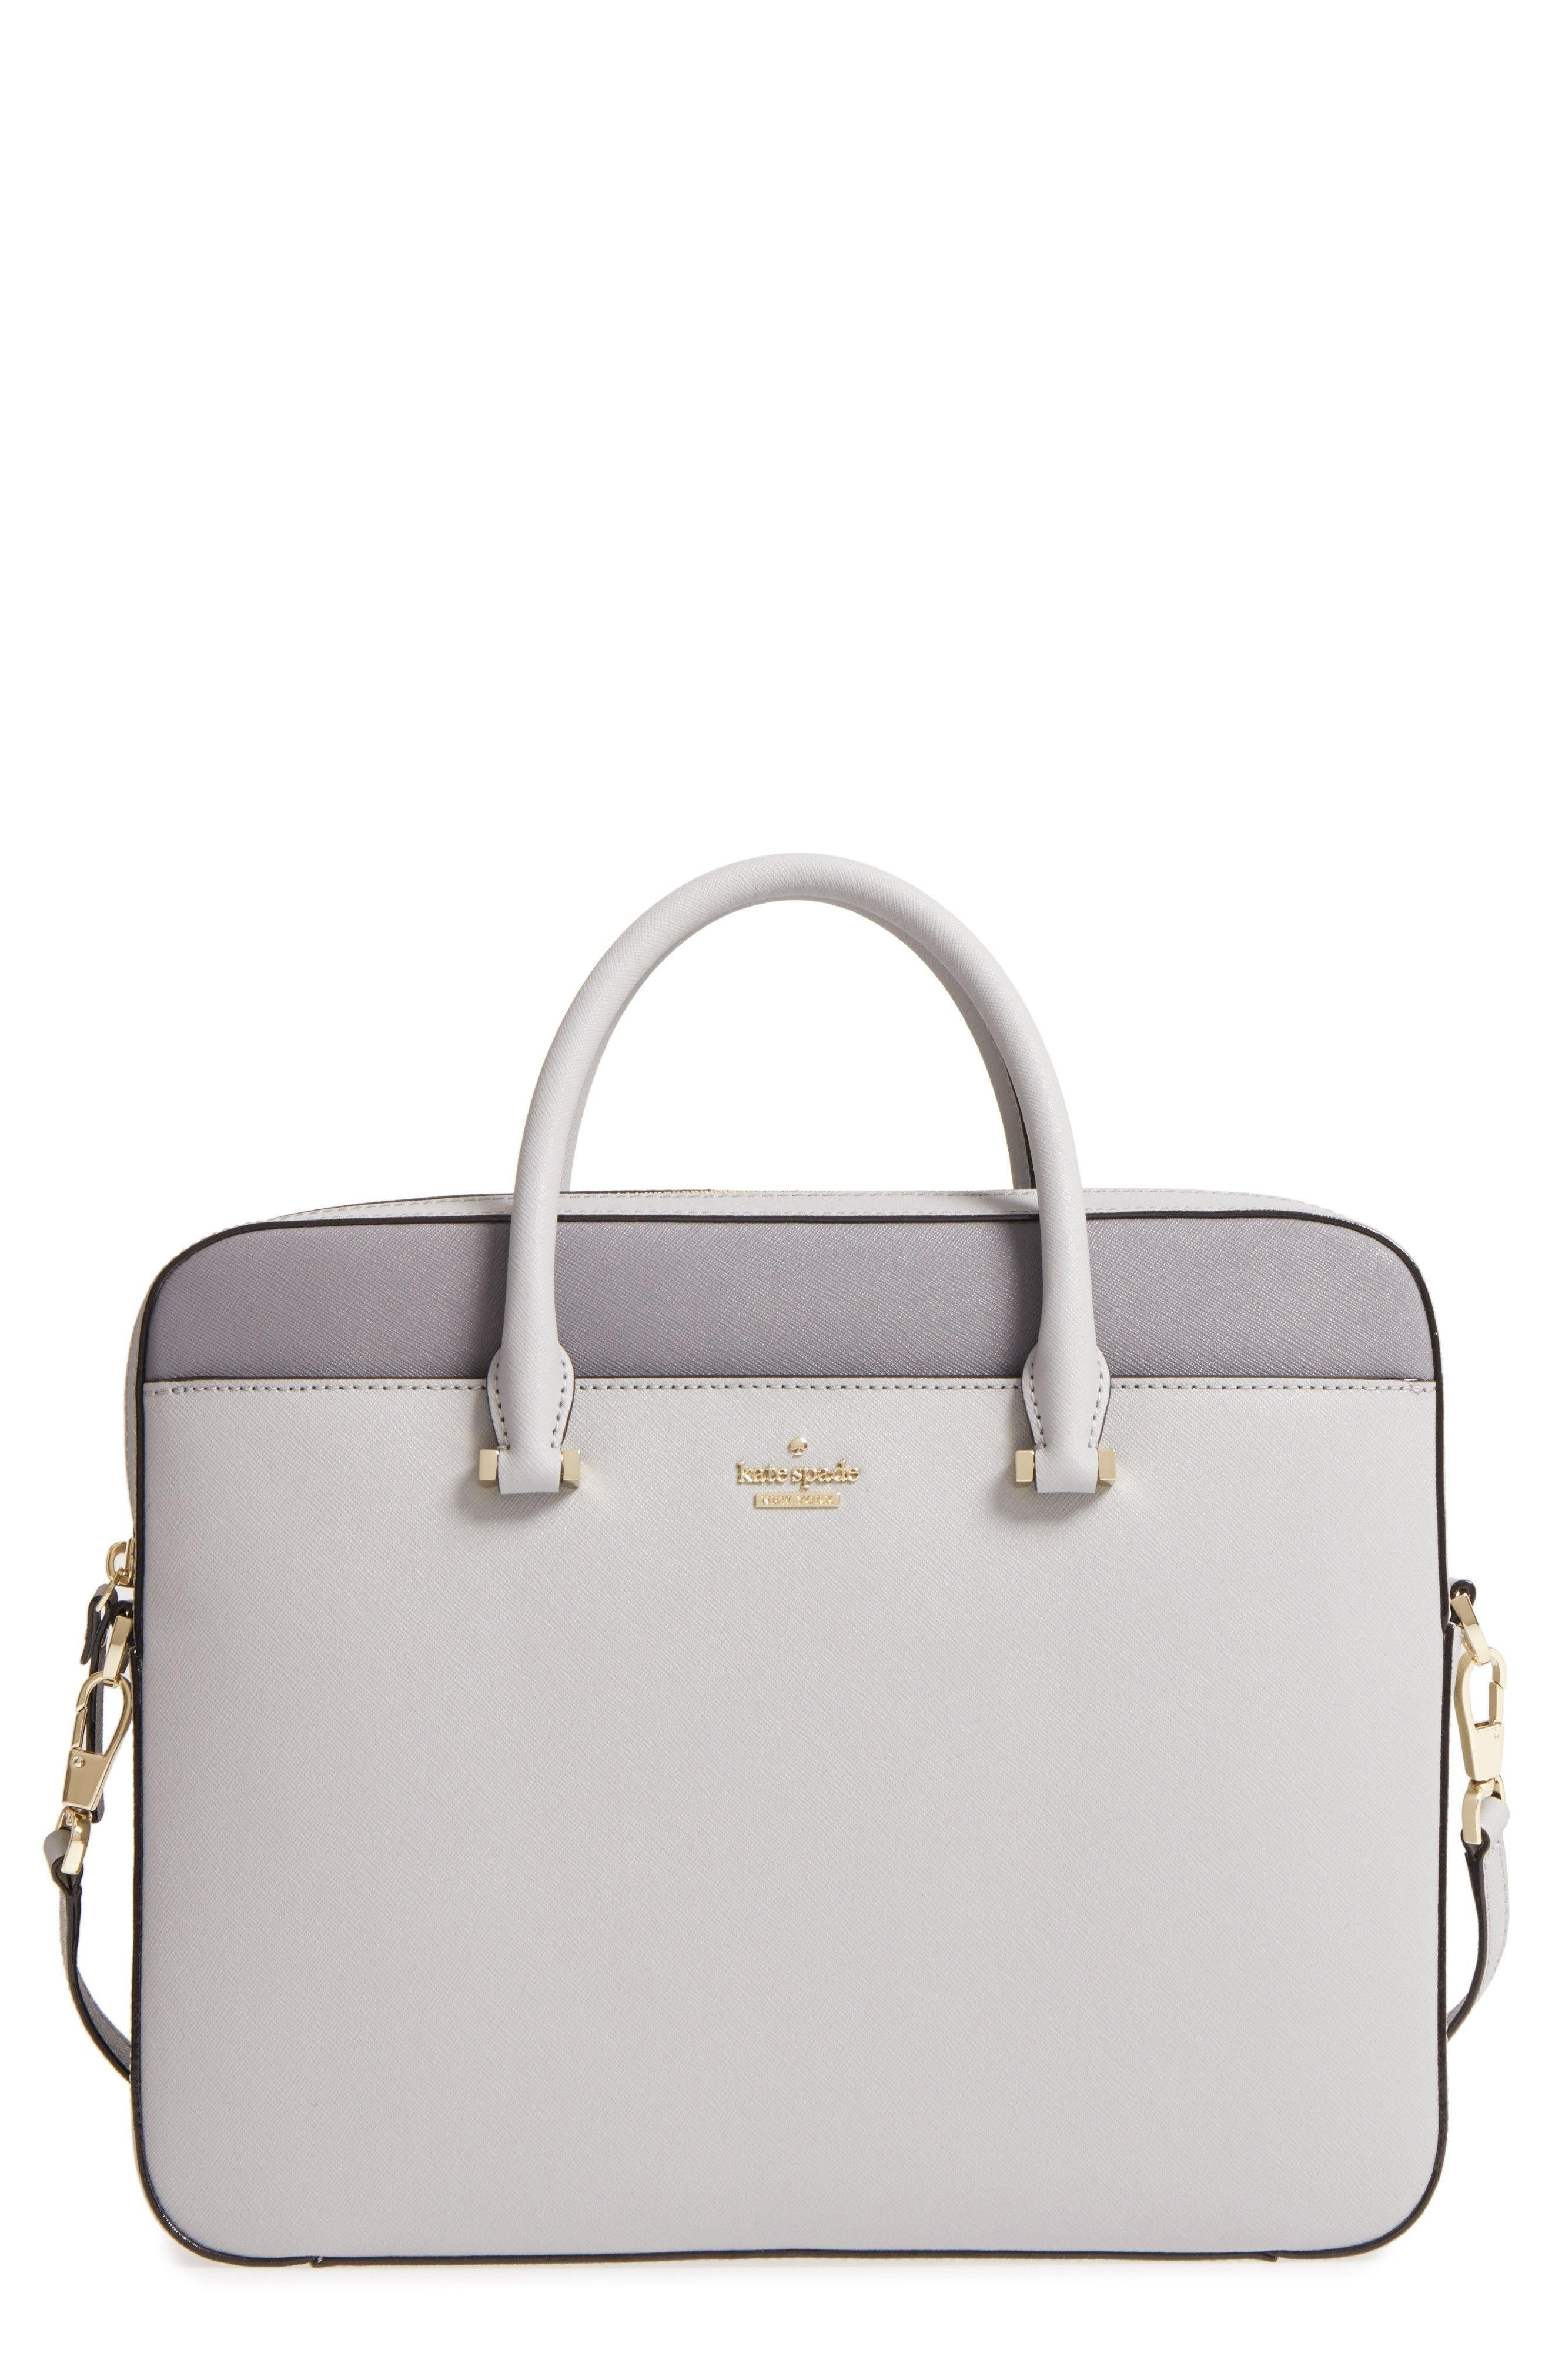 new product 92760 f428d saffiano leather laptop bag - Kate Spade #nordstrom #laptop ...